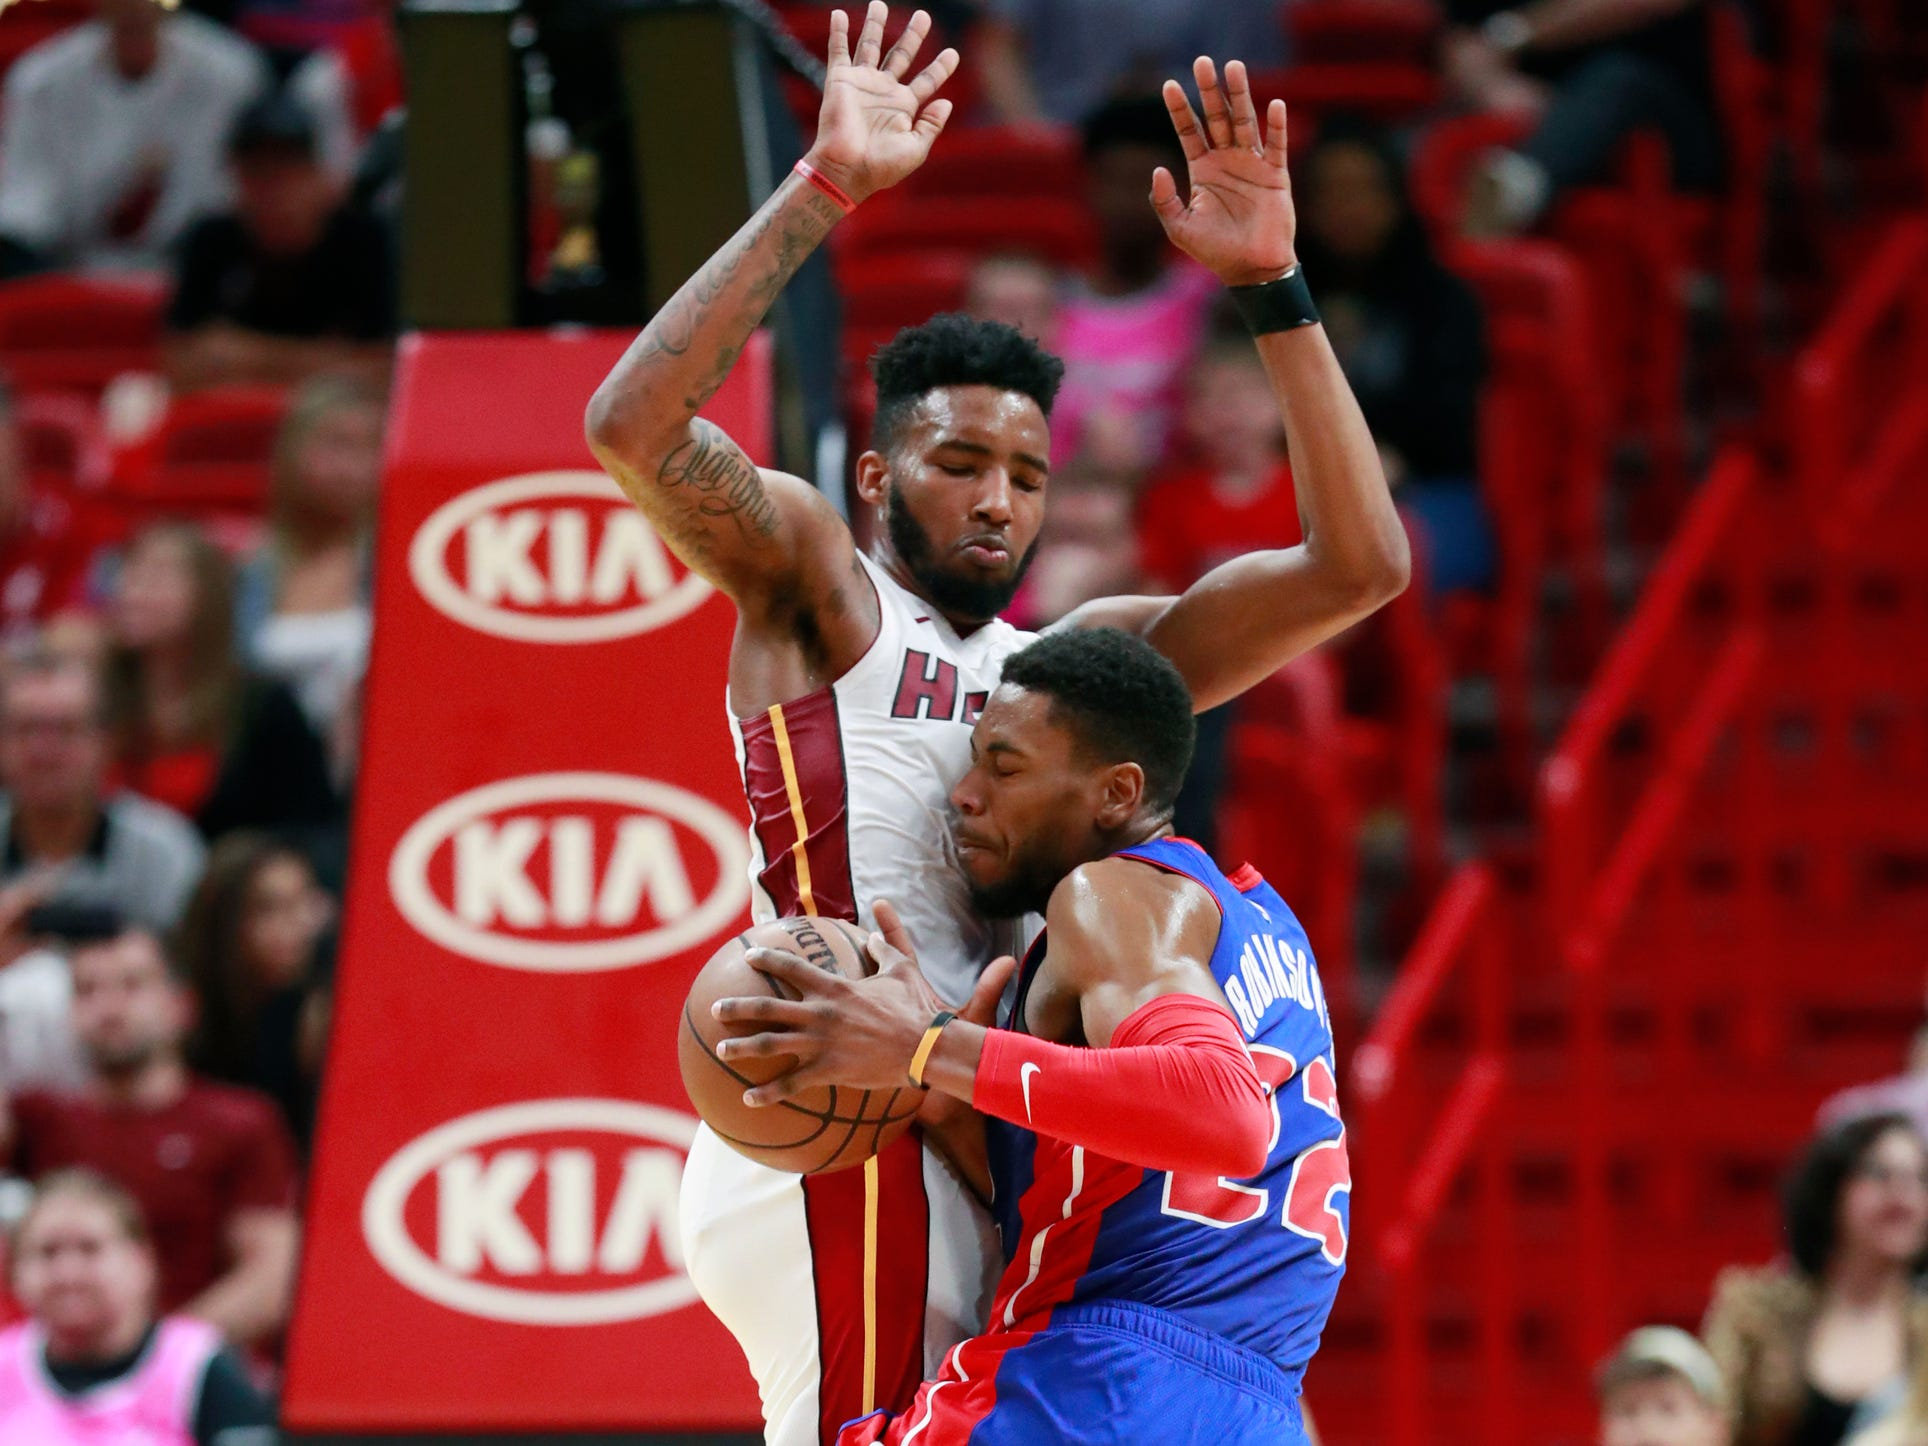 Detroit Pistons guard Glenn Robinson III (22) collides with Miami Heat forward Derrick Jones Jr. as he drives to the basket during the second half.